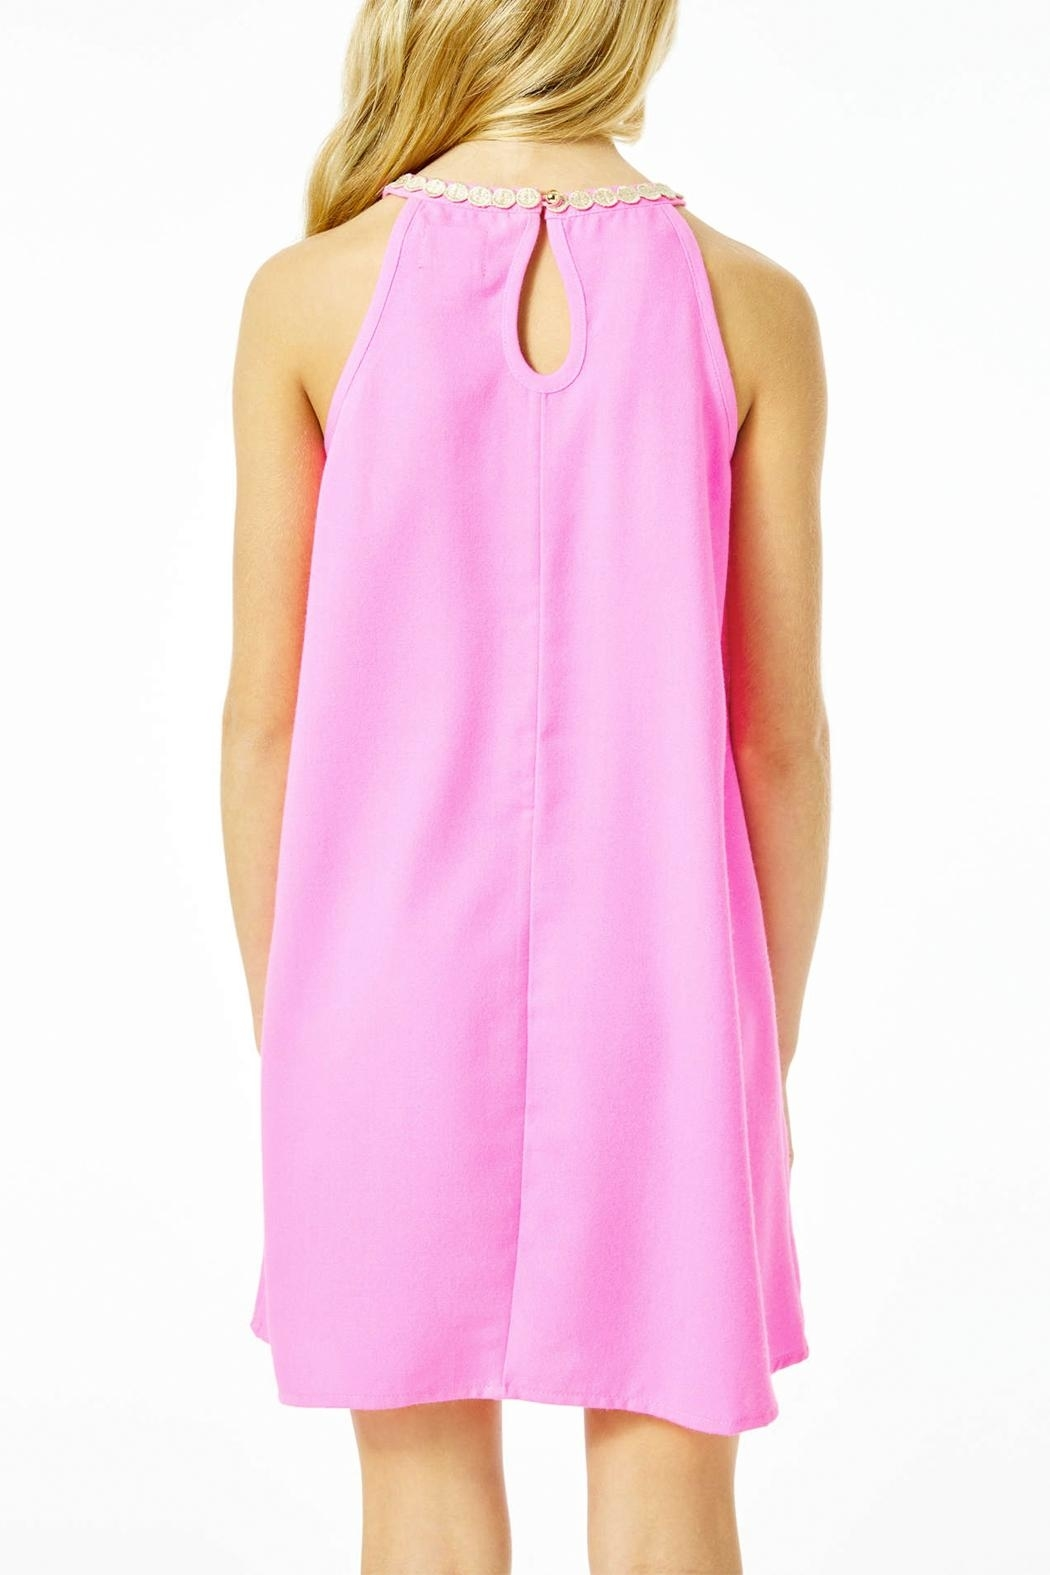 Lilly Pulitzer Mini Pearl Shift-Dress - Side Cropped Image